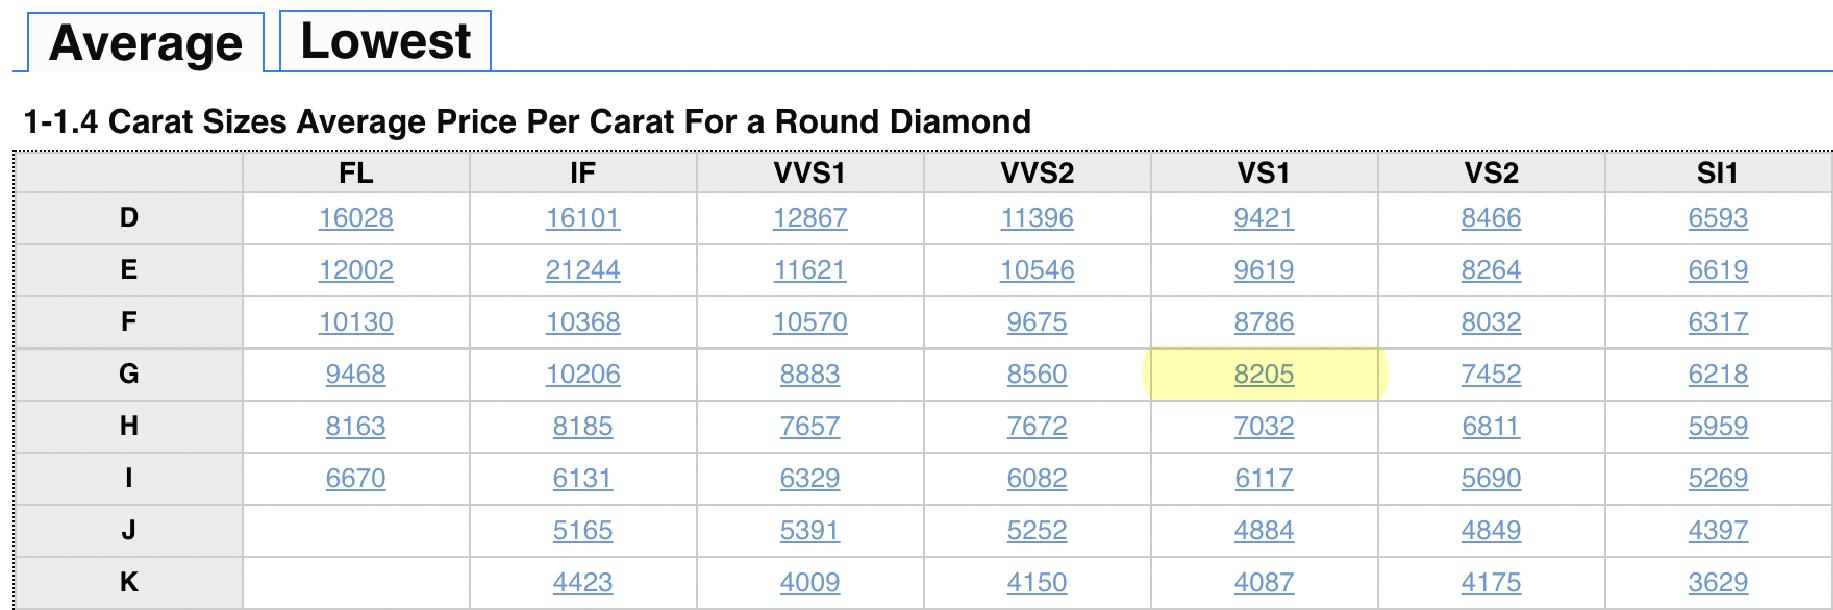 Average Diamond Price per Carat for 1 to 1.4 carats and D to K color.